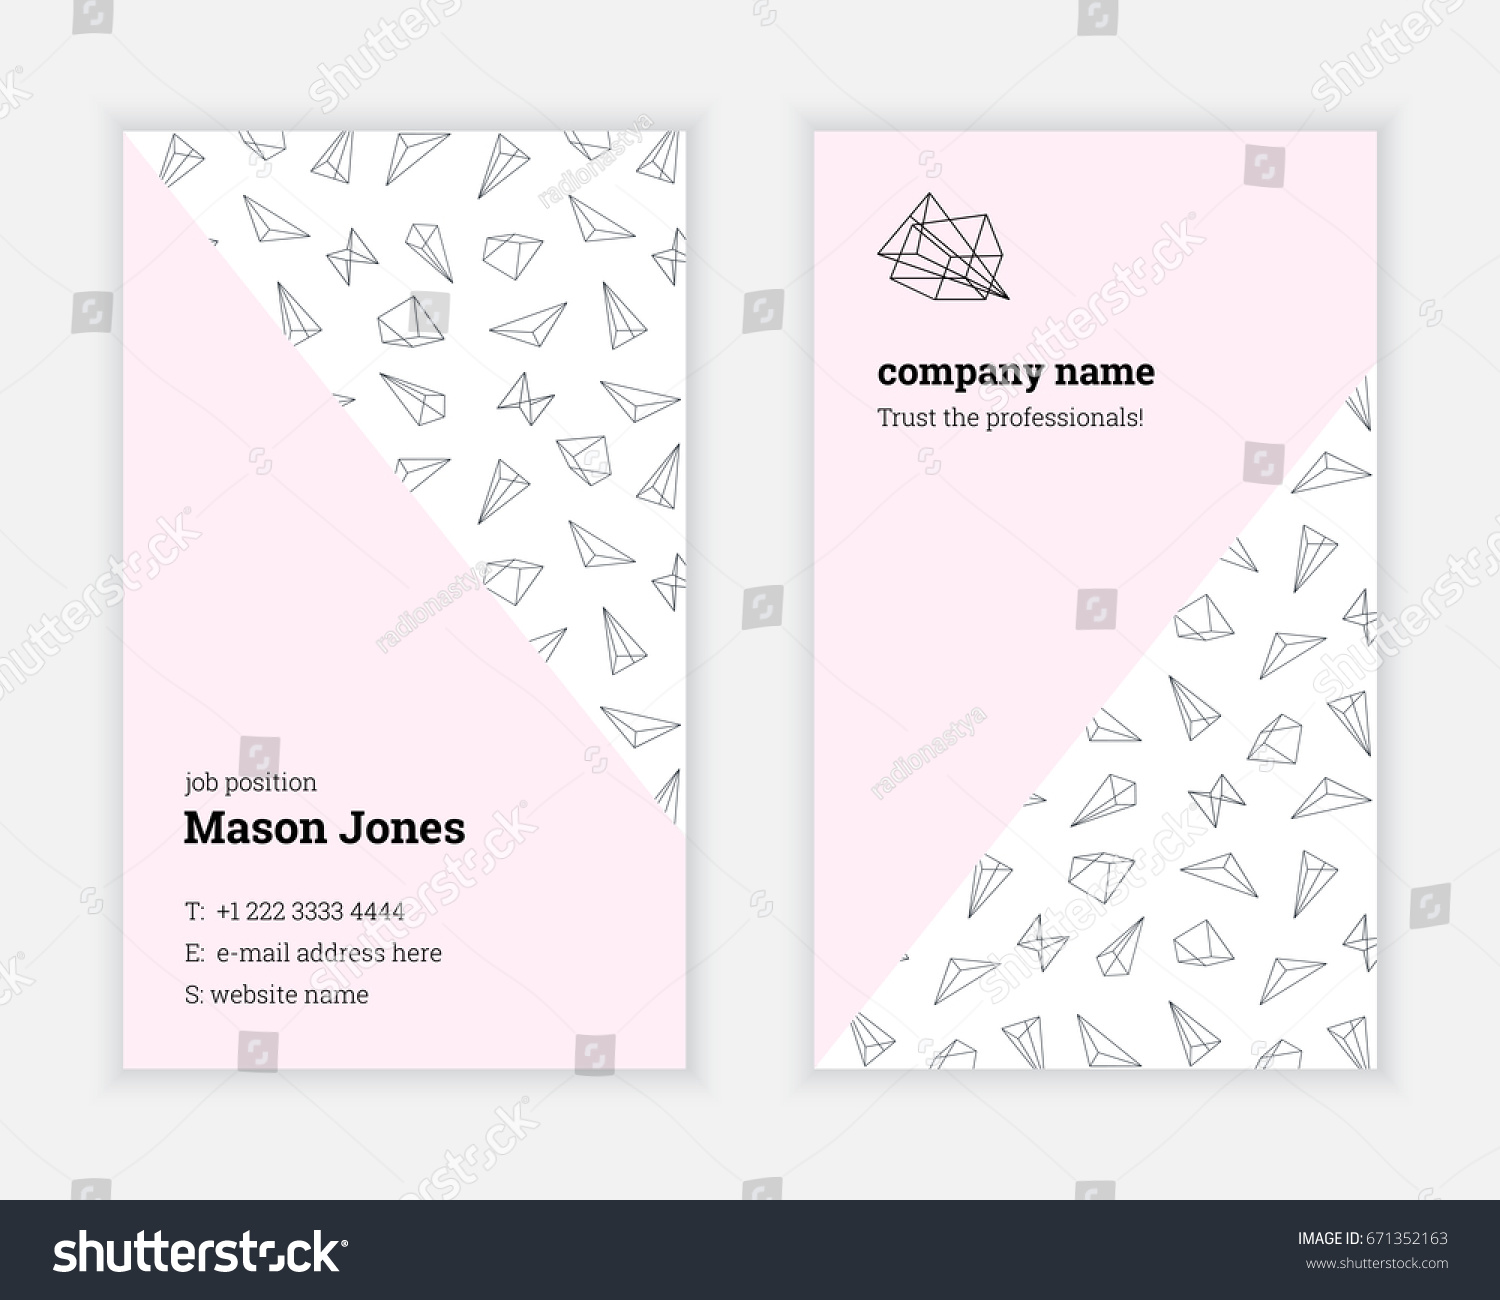 Standard Business Card Template Eliolera